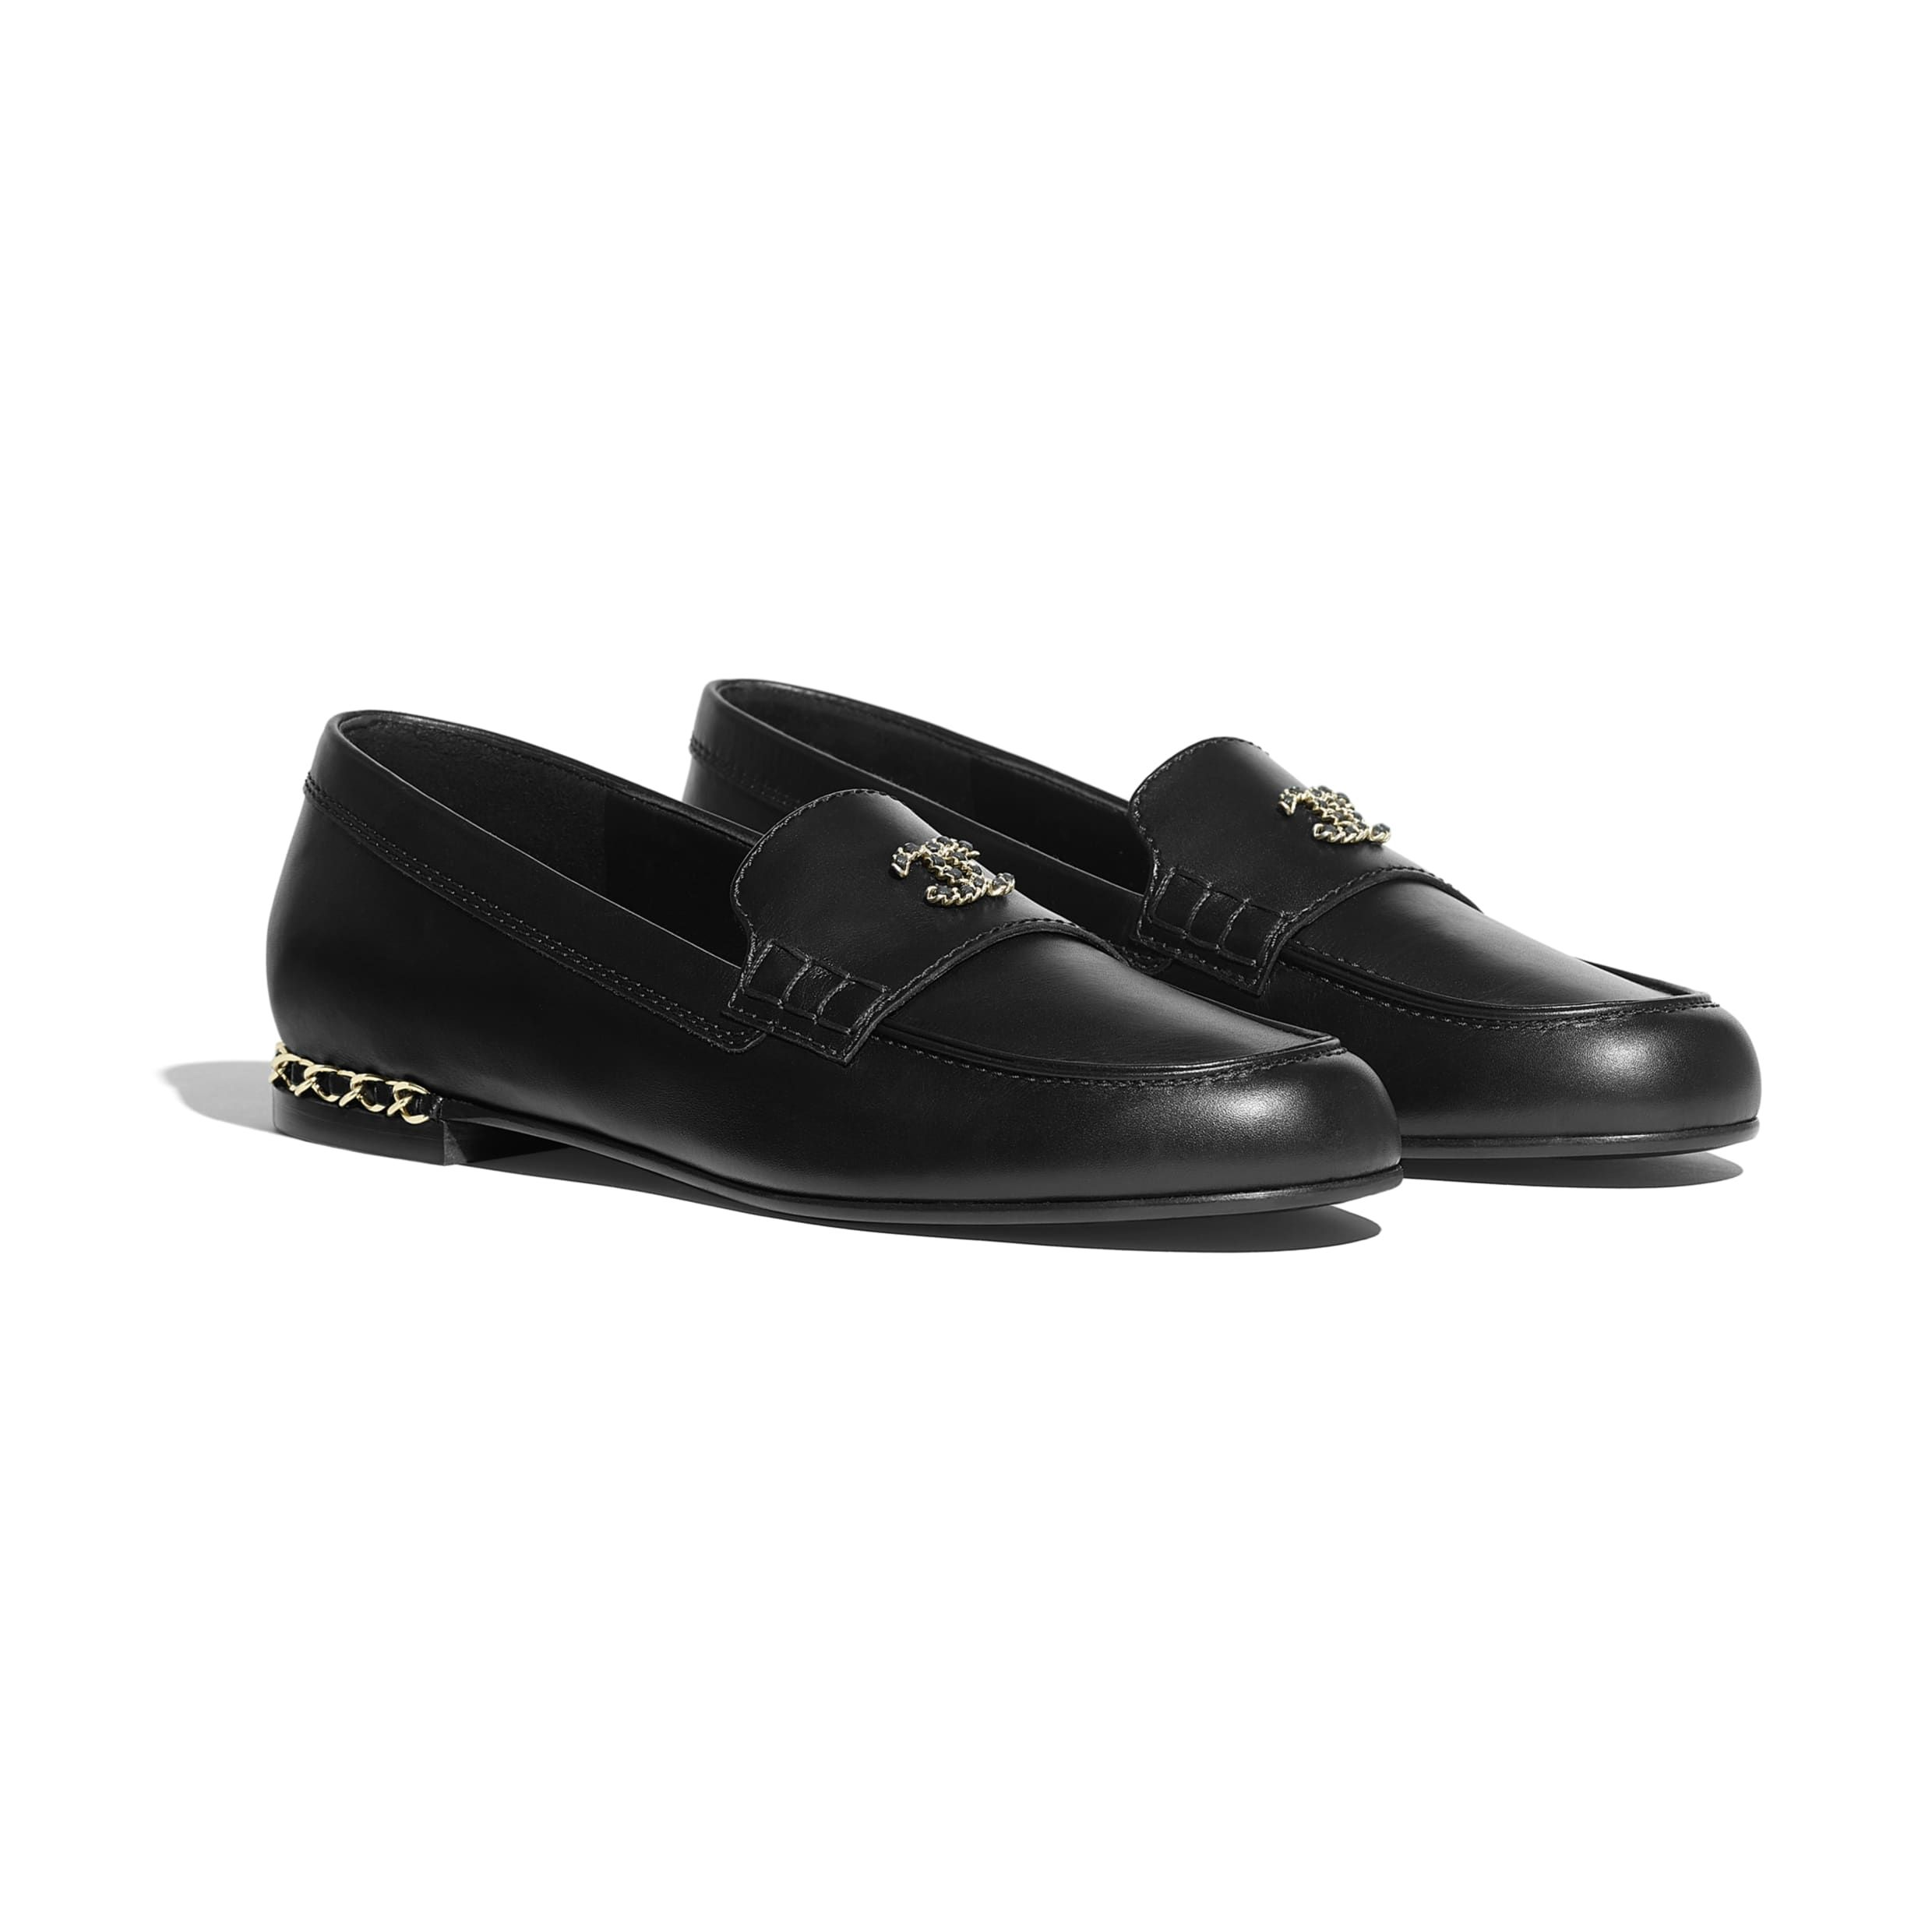 Loafers Black Calfskin Alternative View See Full Sized Version Chanel Shoes Chanel Loafers Loafers [ 2480 x 2480 Pixel ]